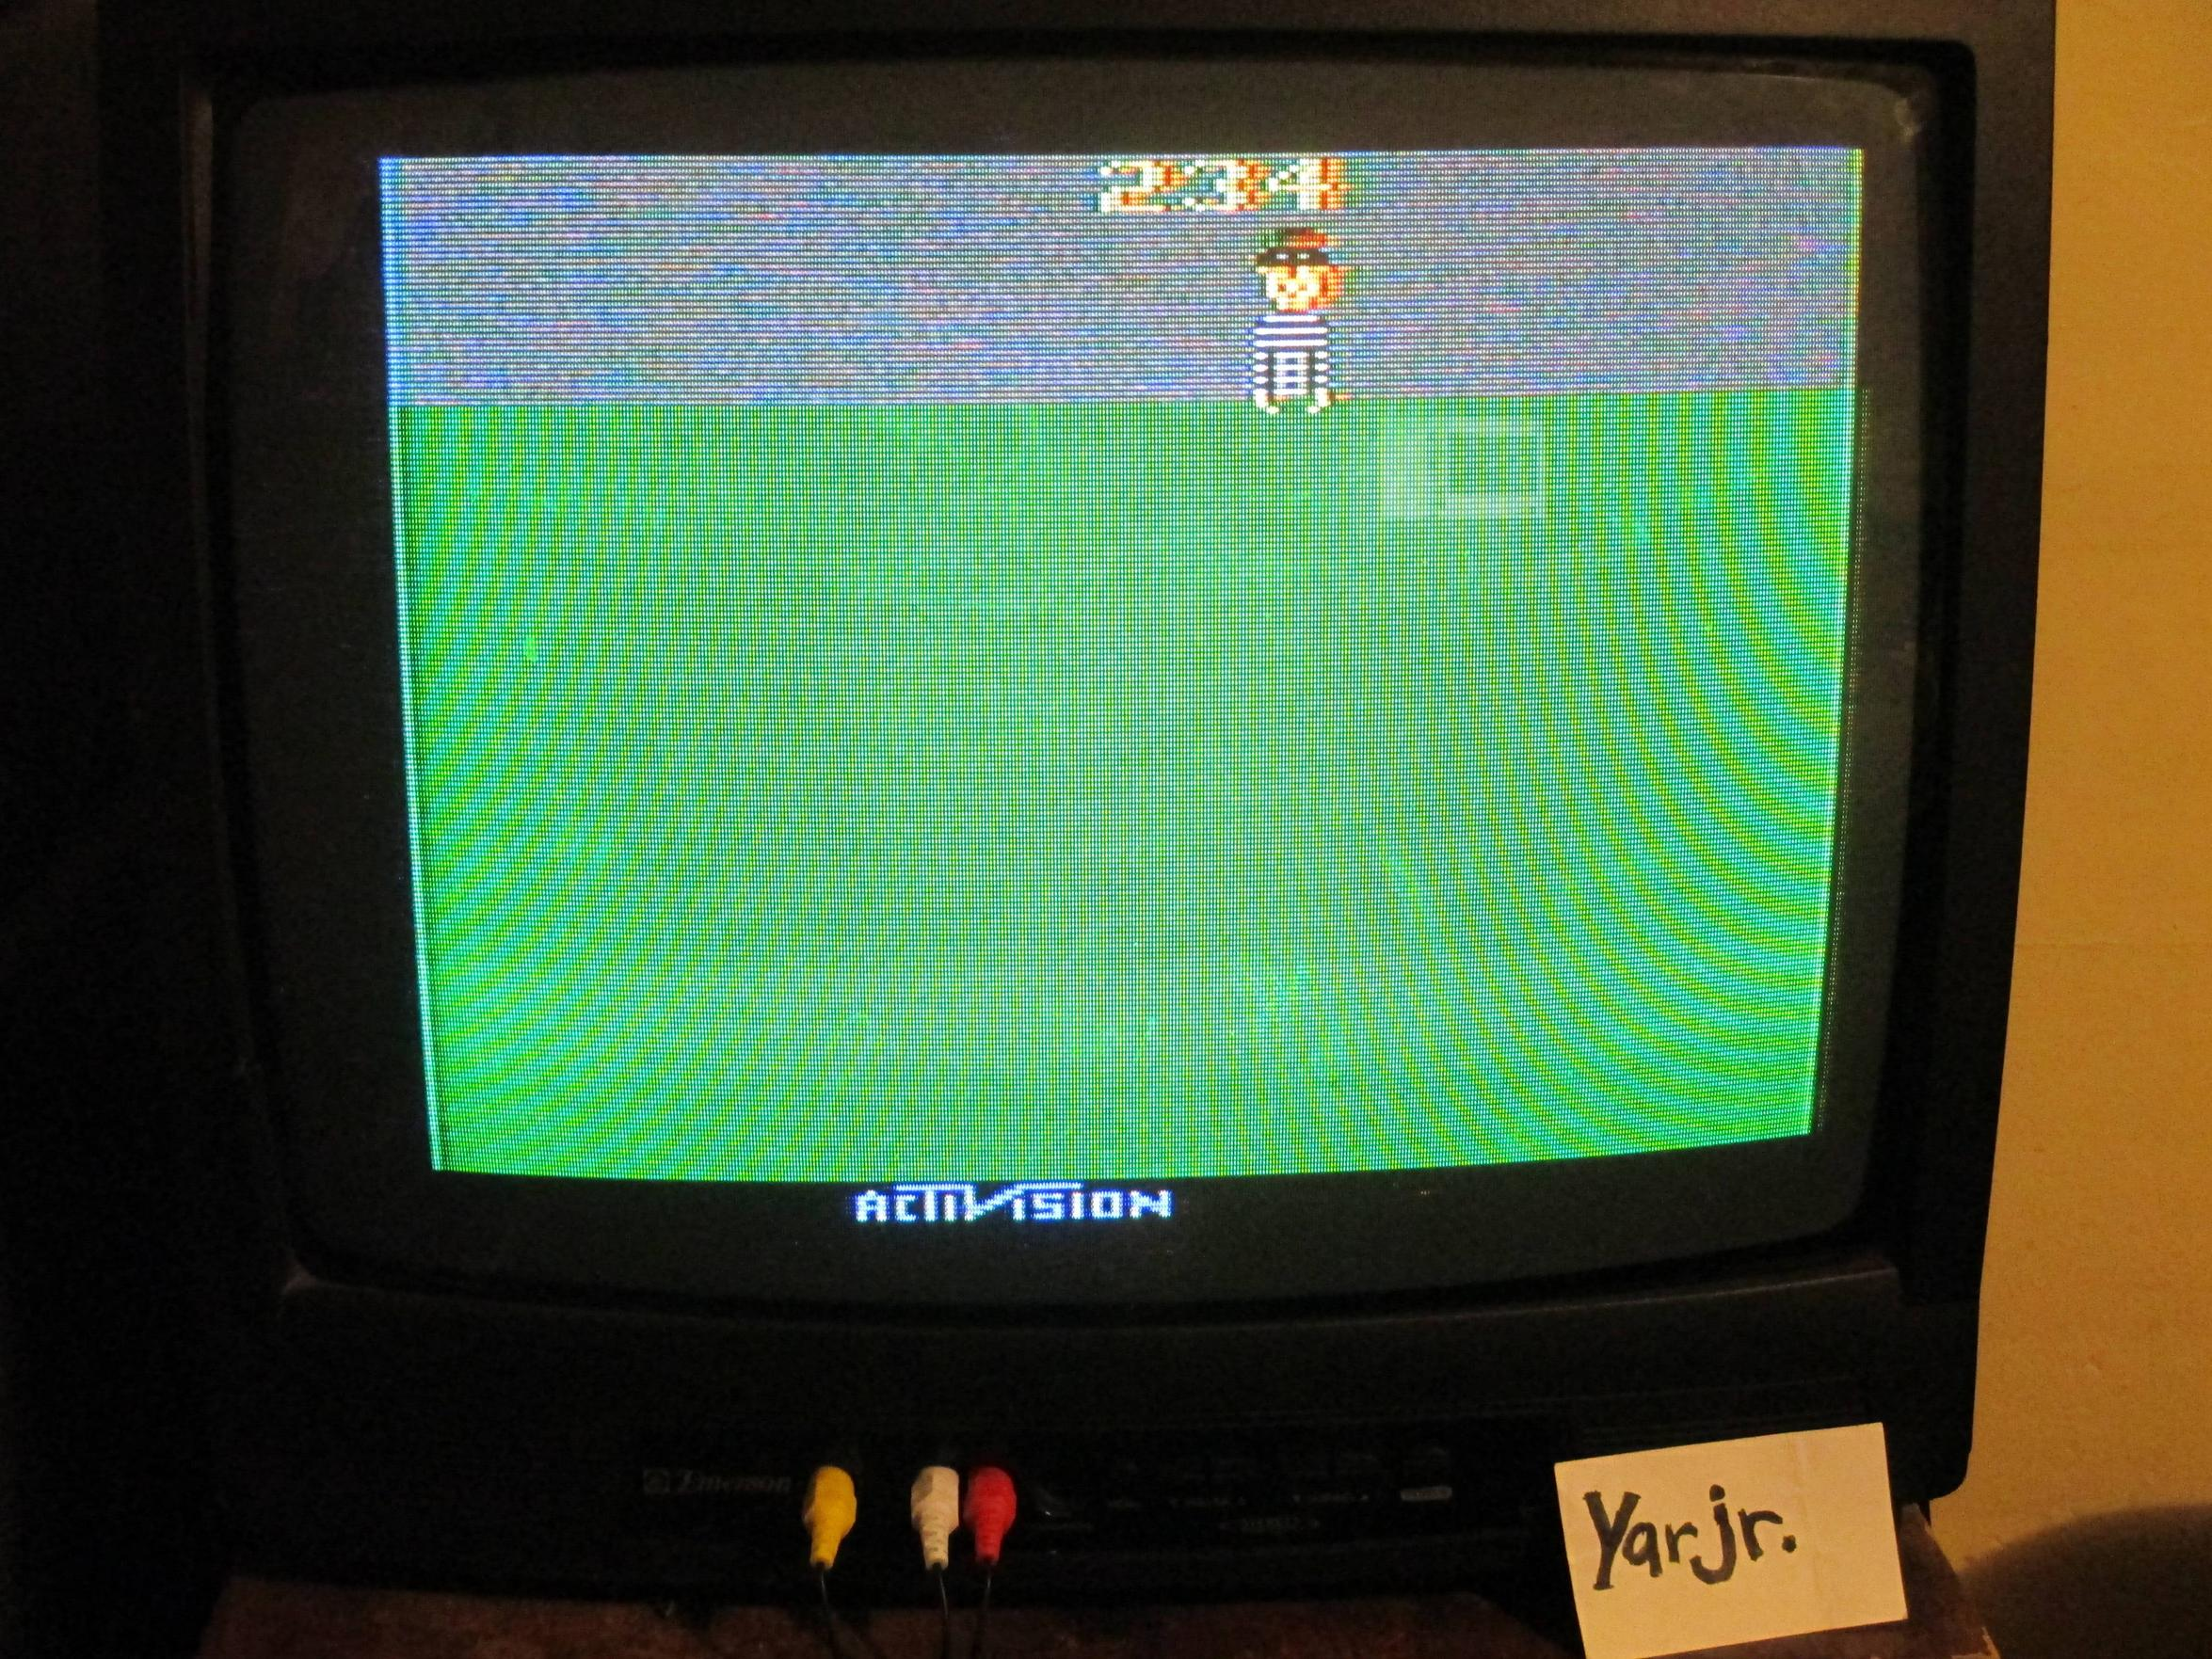 yarjr: Kaboom! (Atari 2600 Expert/A) 234 points on 2013-09-13 03:25:10